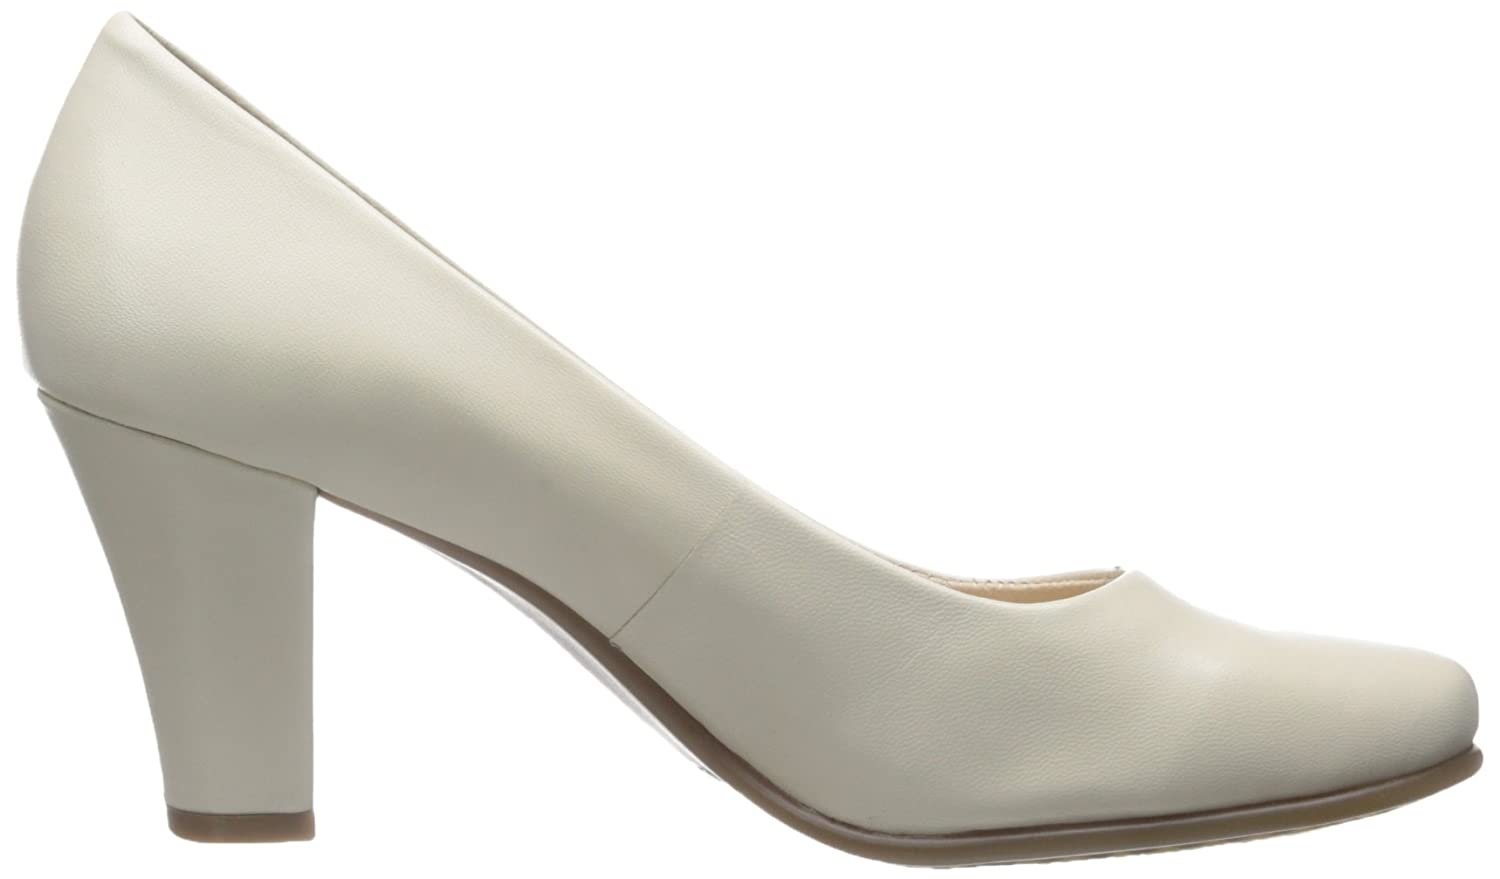 Aerosoles Women's Dolled 10.5 Up dress Pump B014WVNAOA 10.5 Dolled W US|Bone 6fae0c